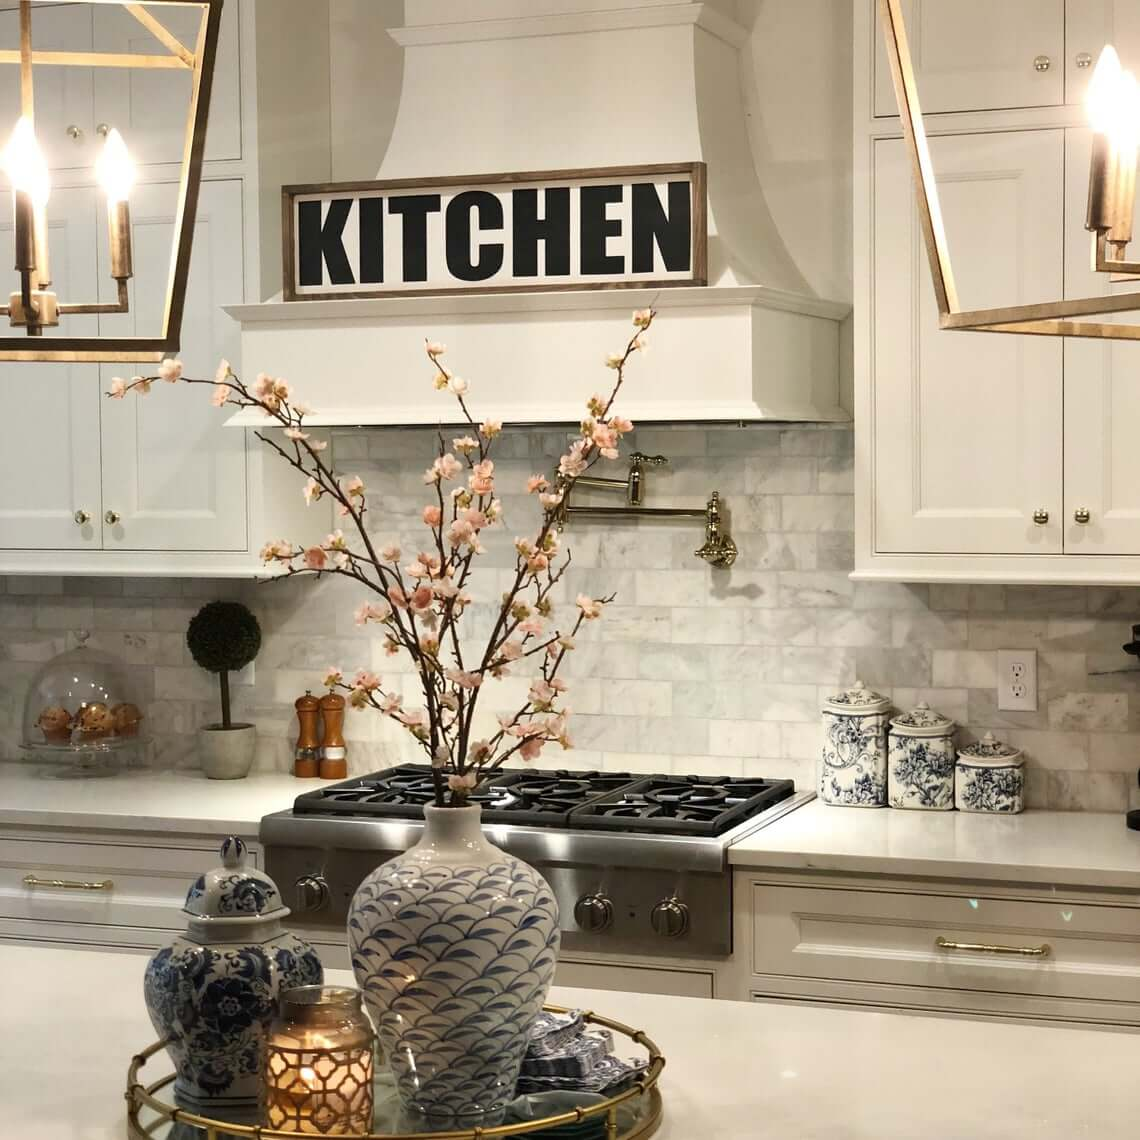 Black and White Wood Trimmed Kitchen Sign